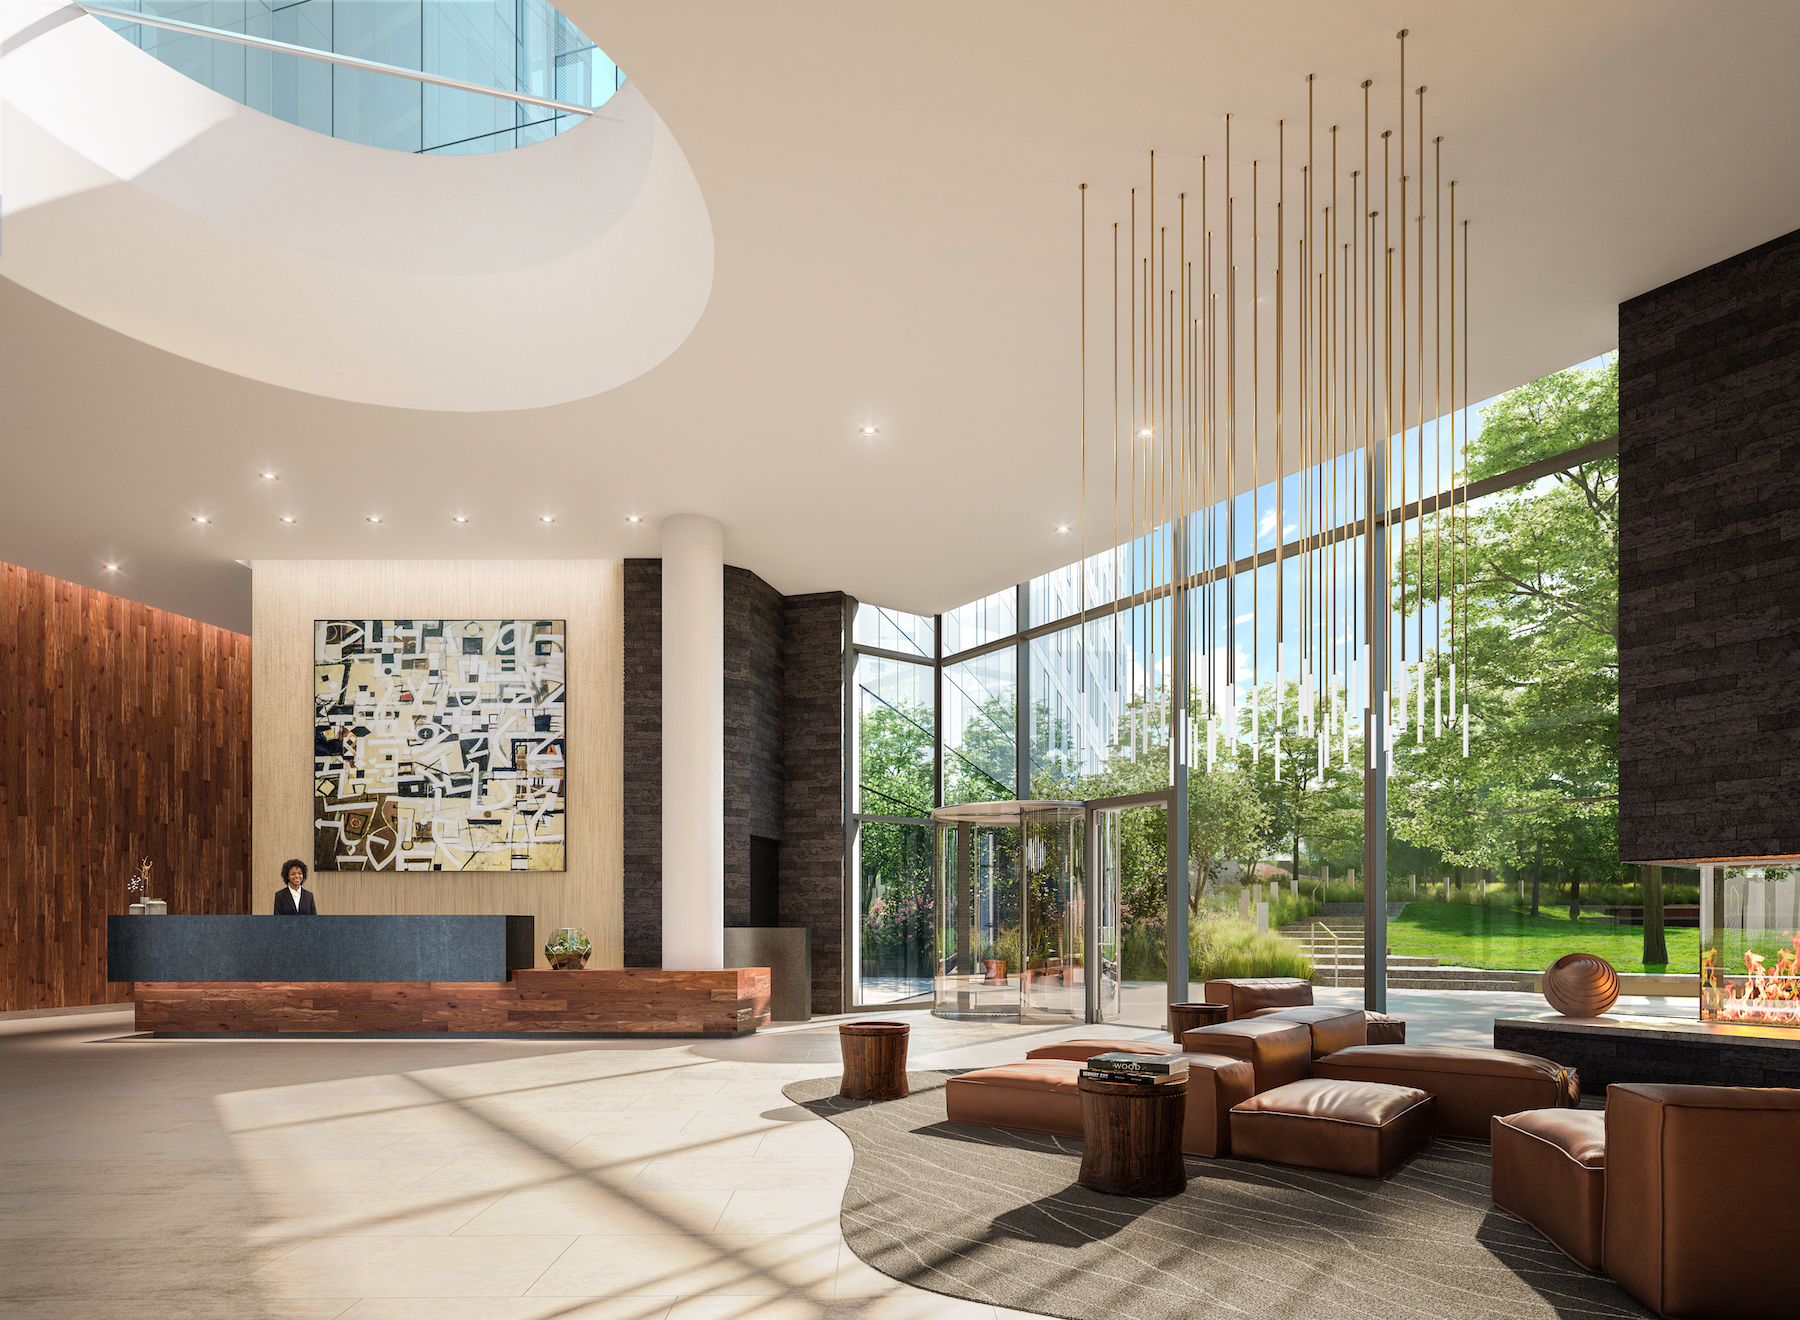 New Renderings Unveiled of Jackson Park, Tishman Speyer's New Long Island City Rentals